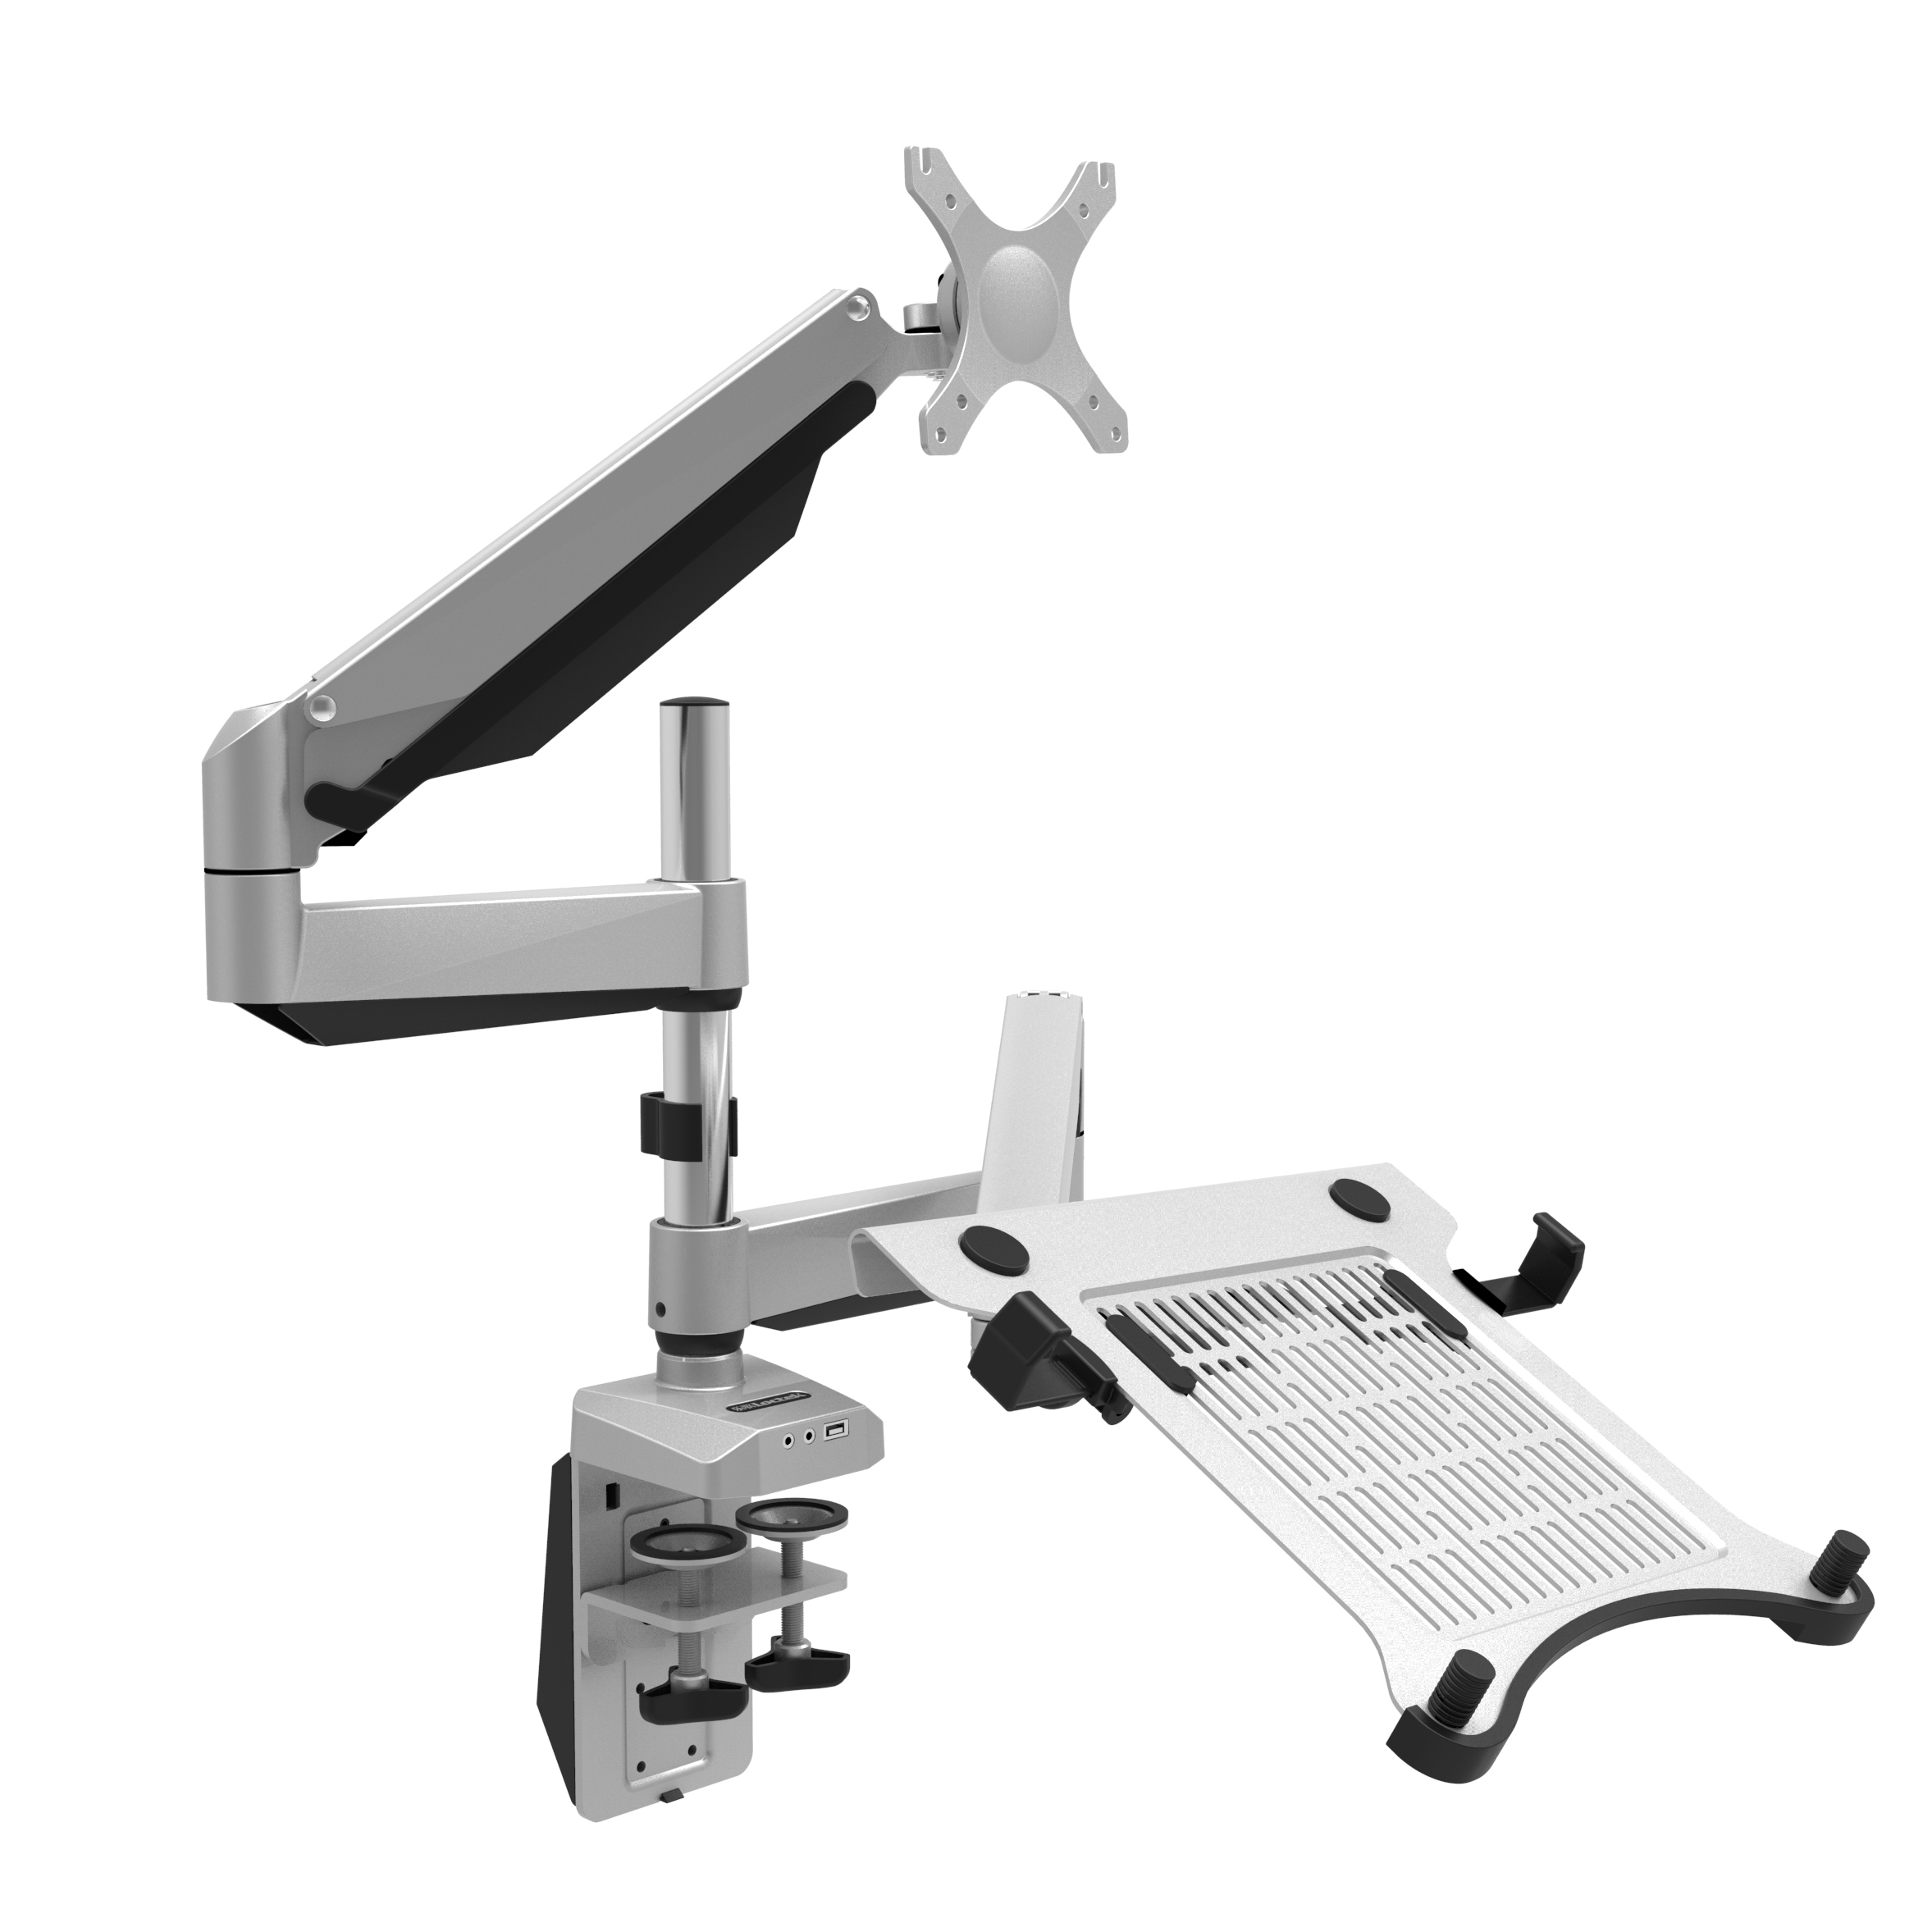 LOCTEK D7DP 2-IN-1 FULL MOTION GAS SPRING DUAL MONITOR ARM DESK MOUNTS FOR LAPTOP & MONITOR